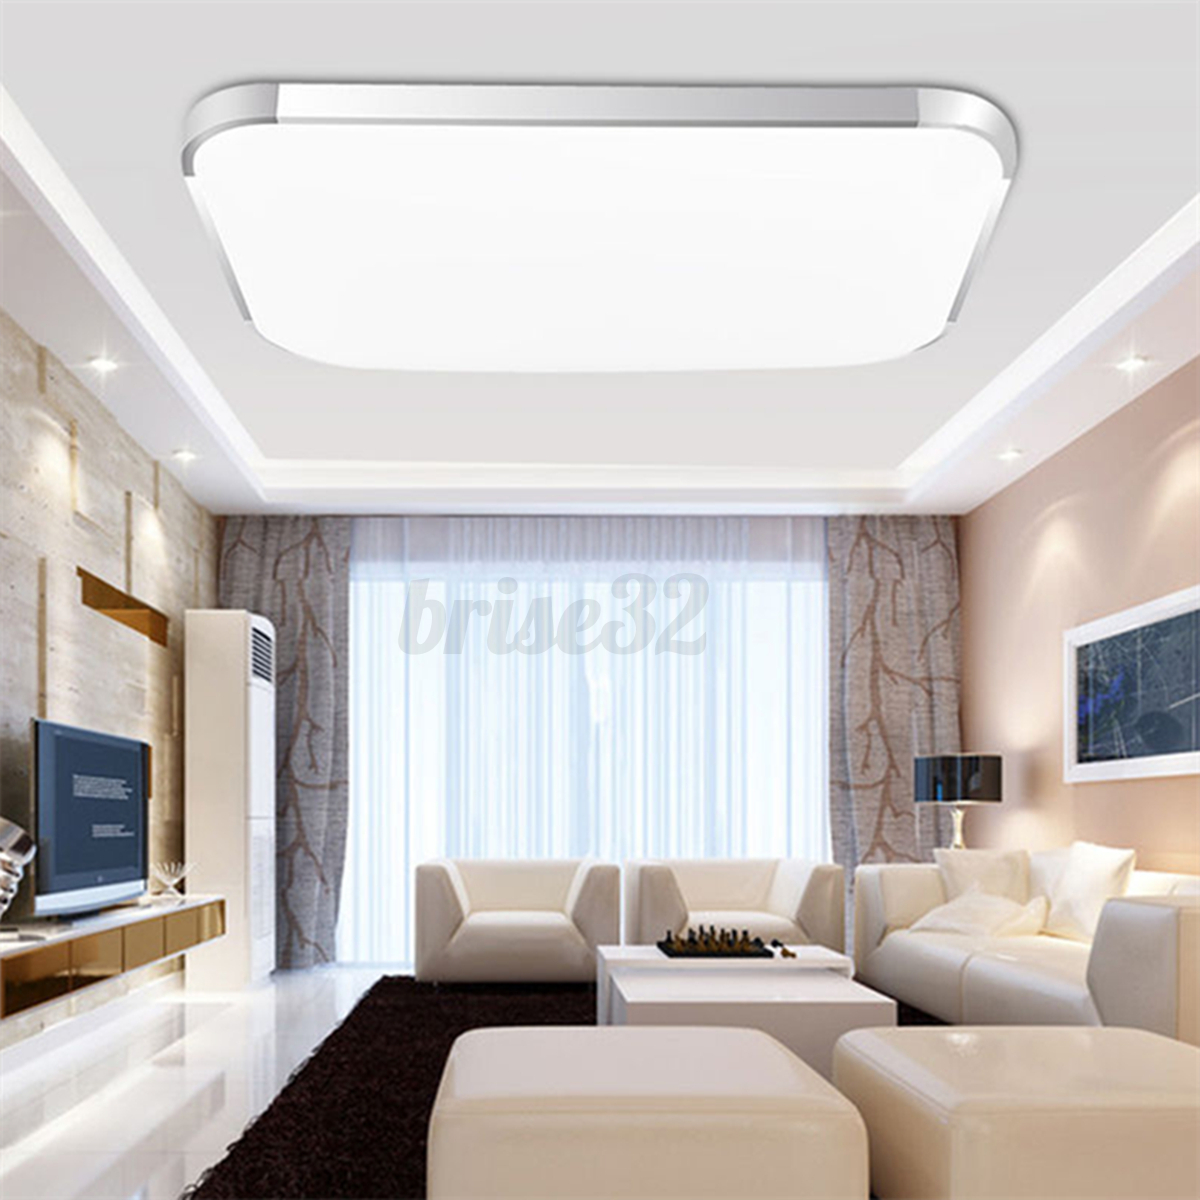 modern led square ceiling down light bedroom living room 14933 | c982268d96379acc23f092272493949993949505cdcb97bef4a745cd8414be8ec4d4a0c6e7934546c7c60323f54ecb